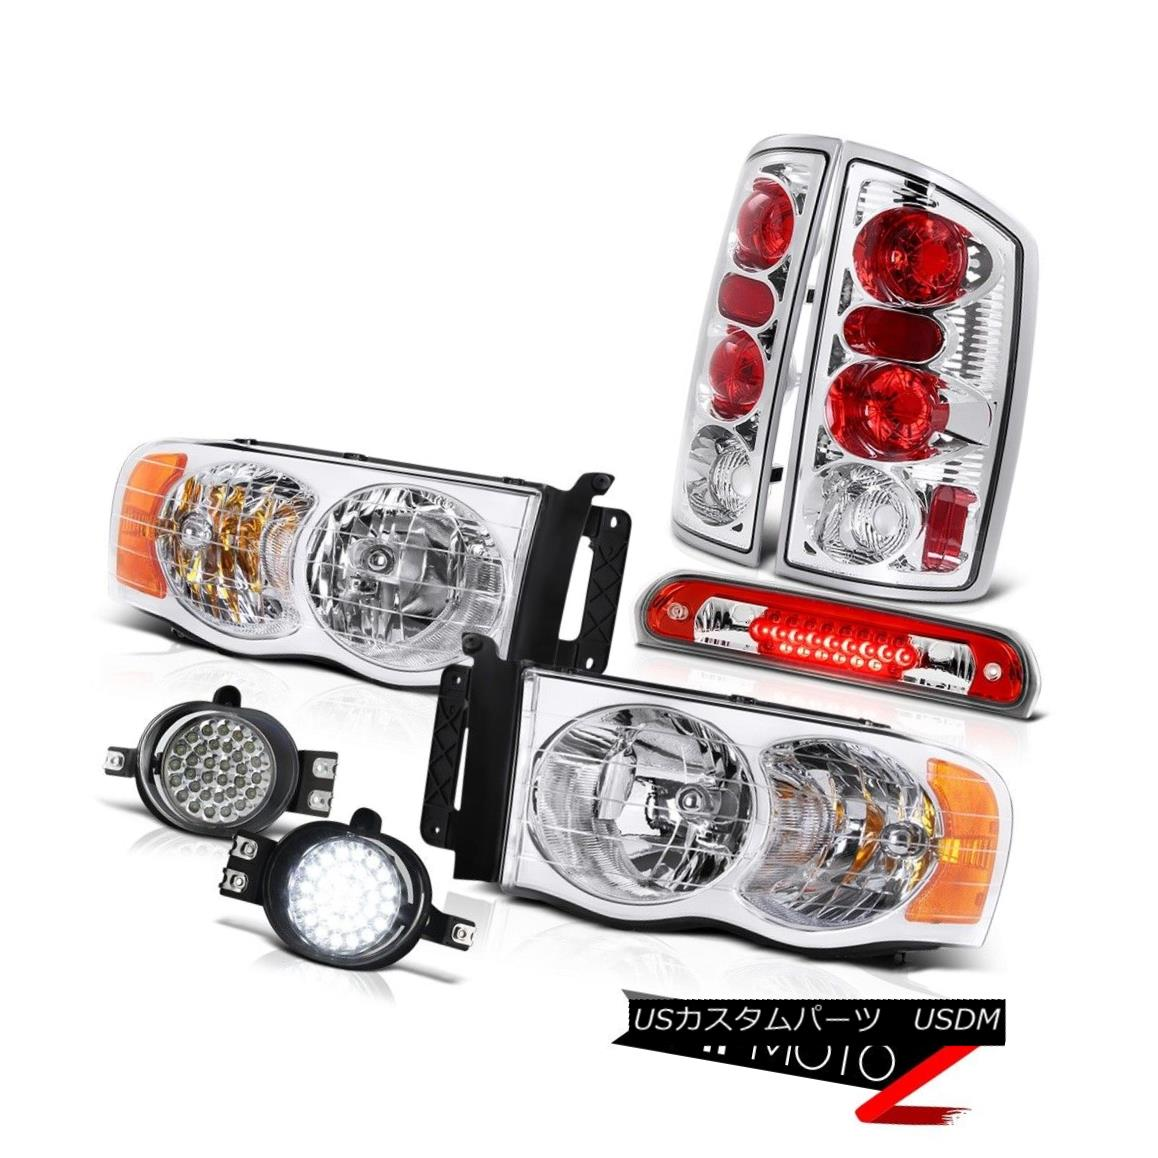 テールライト 02-05 Dodge Ram Factory Style Headlights Signal Tail Lights LED Foglamps Brake 02-05 Dodge Ramファクトリーヘッドライト信号テールライトLED Foglamps Brake